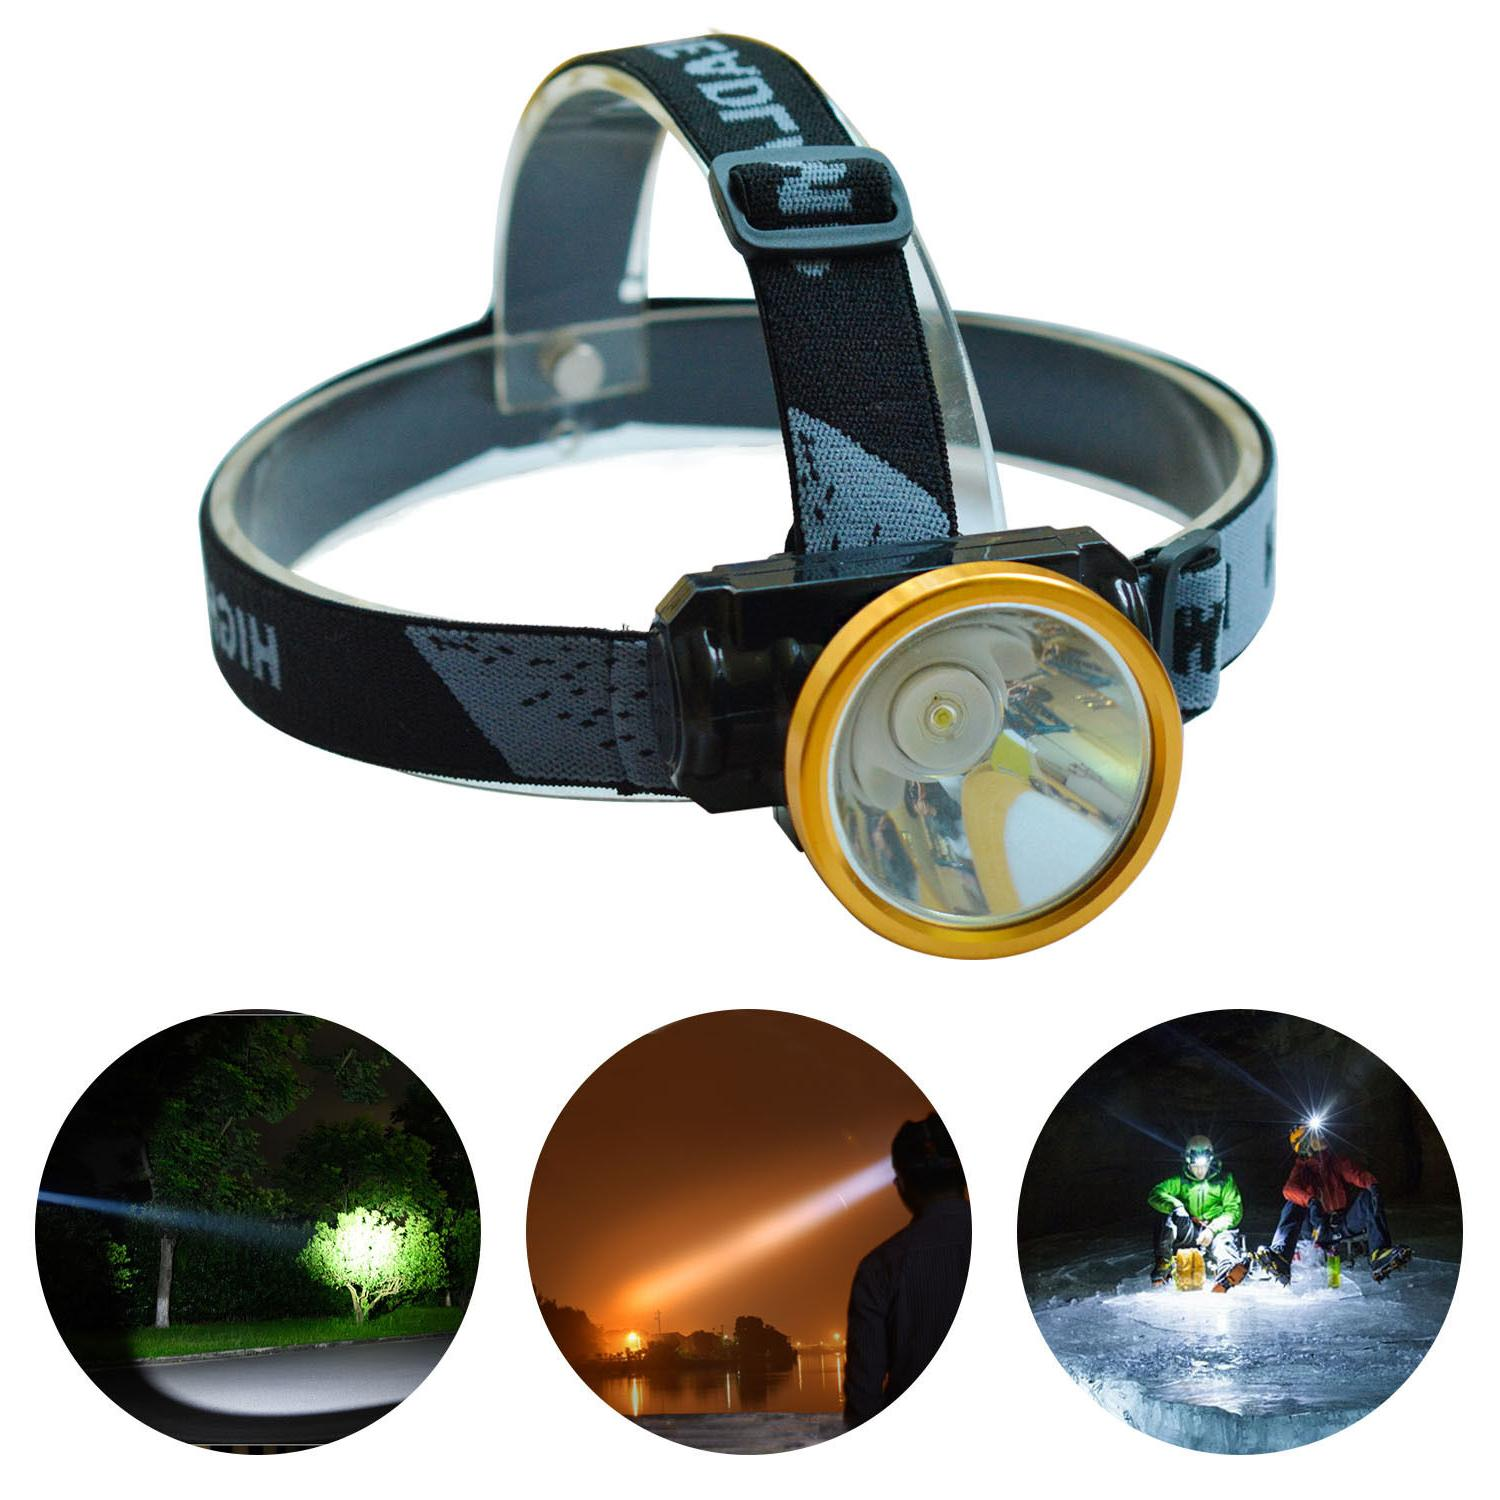 Odear Head LED Rechargeable Headlight for